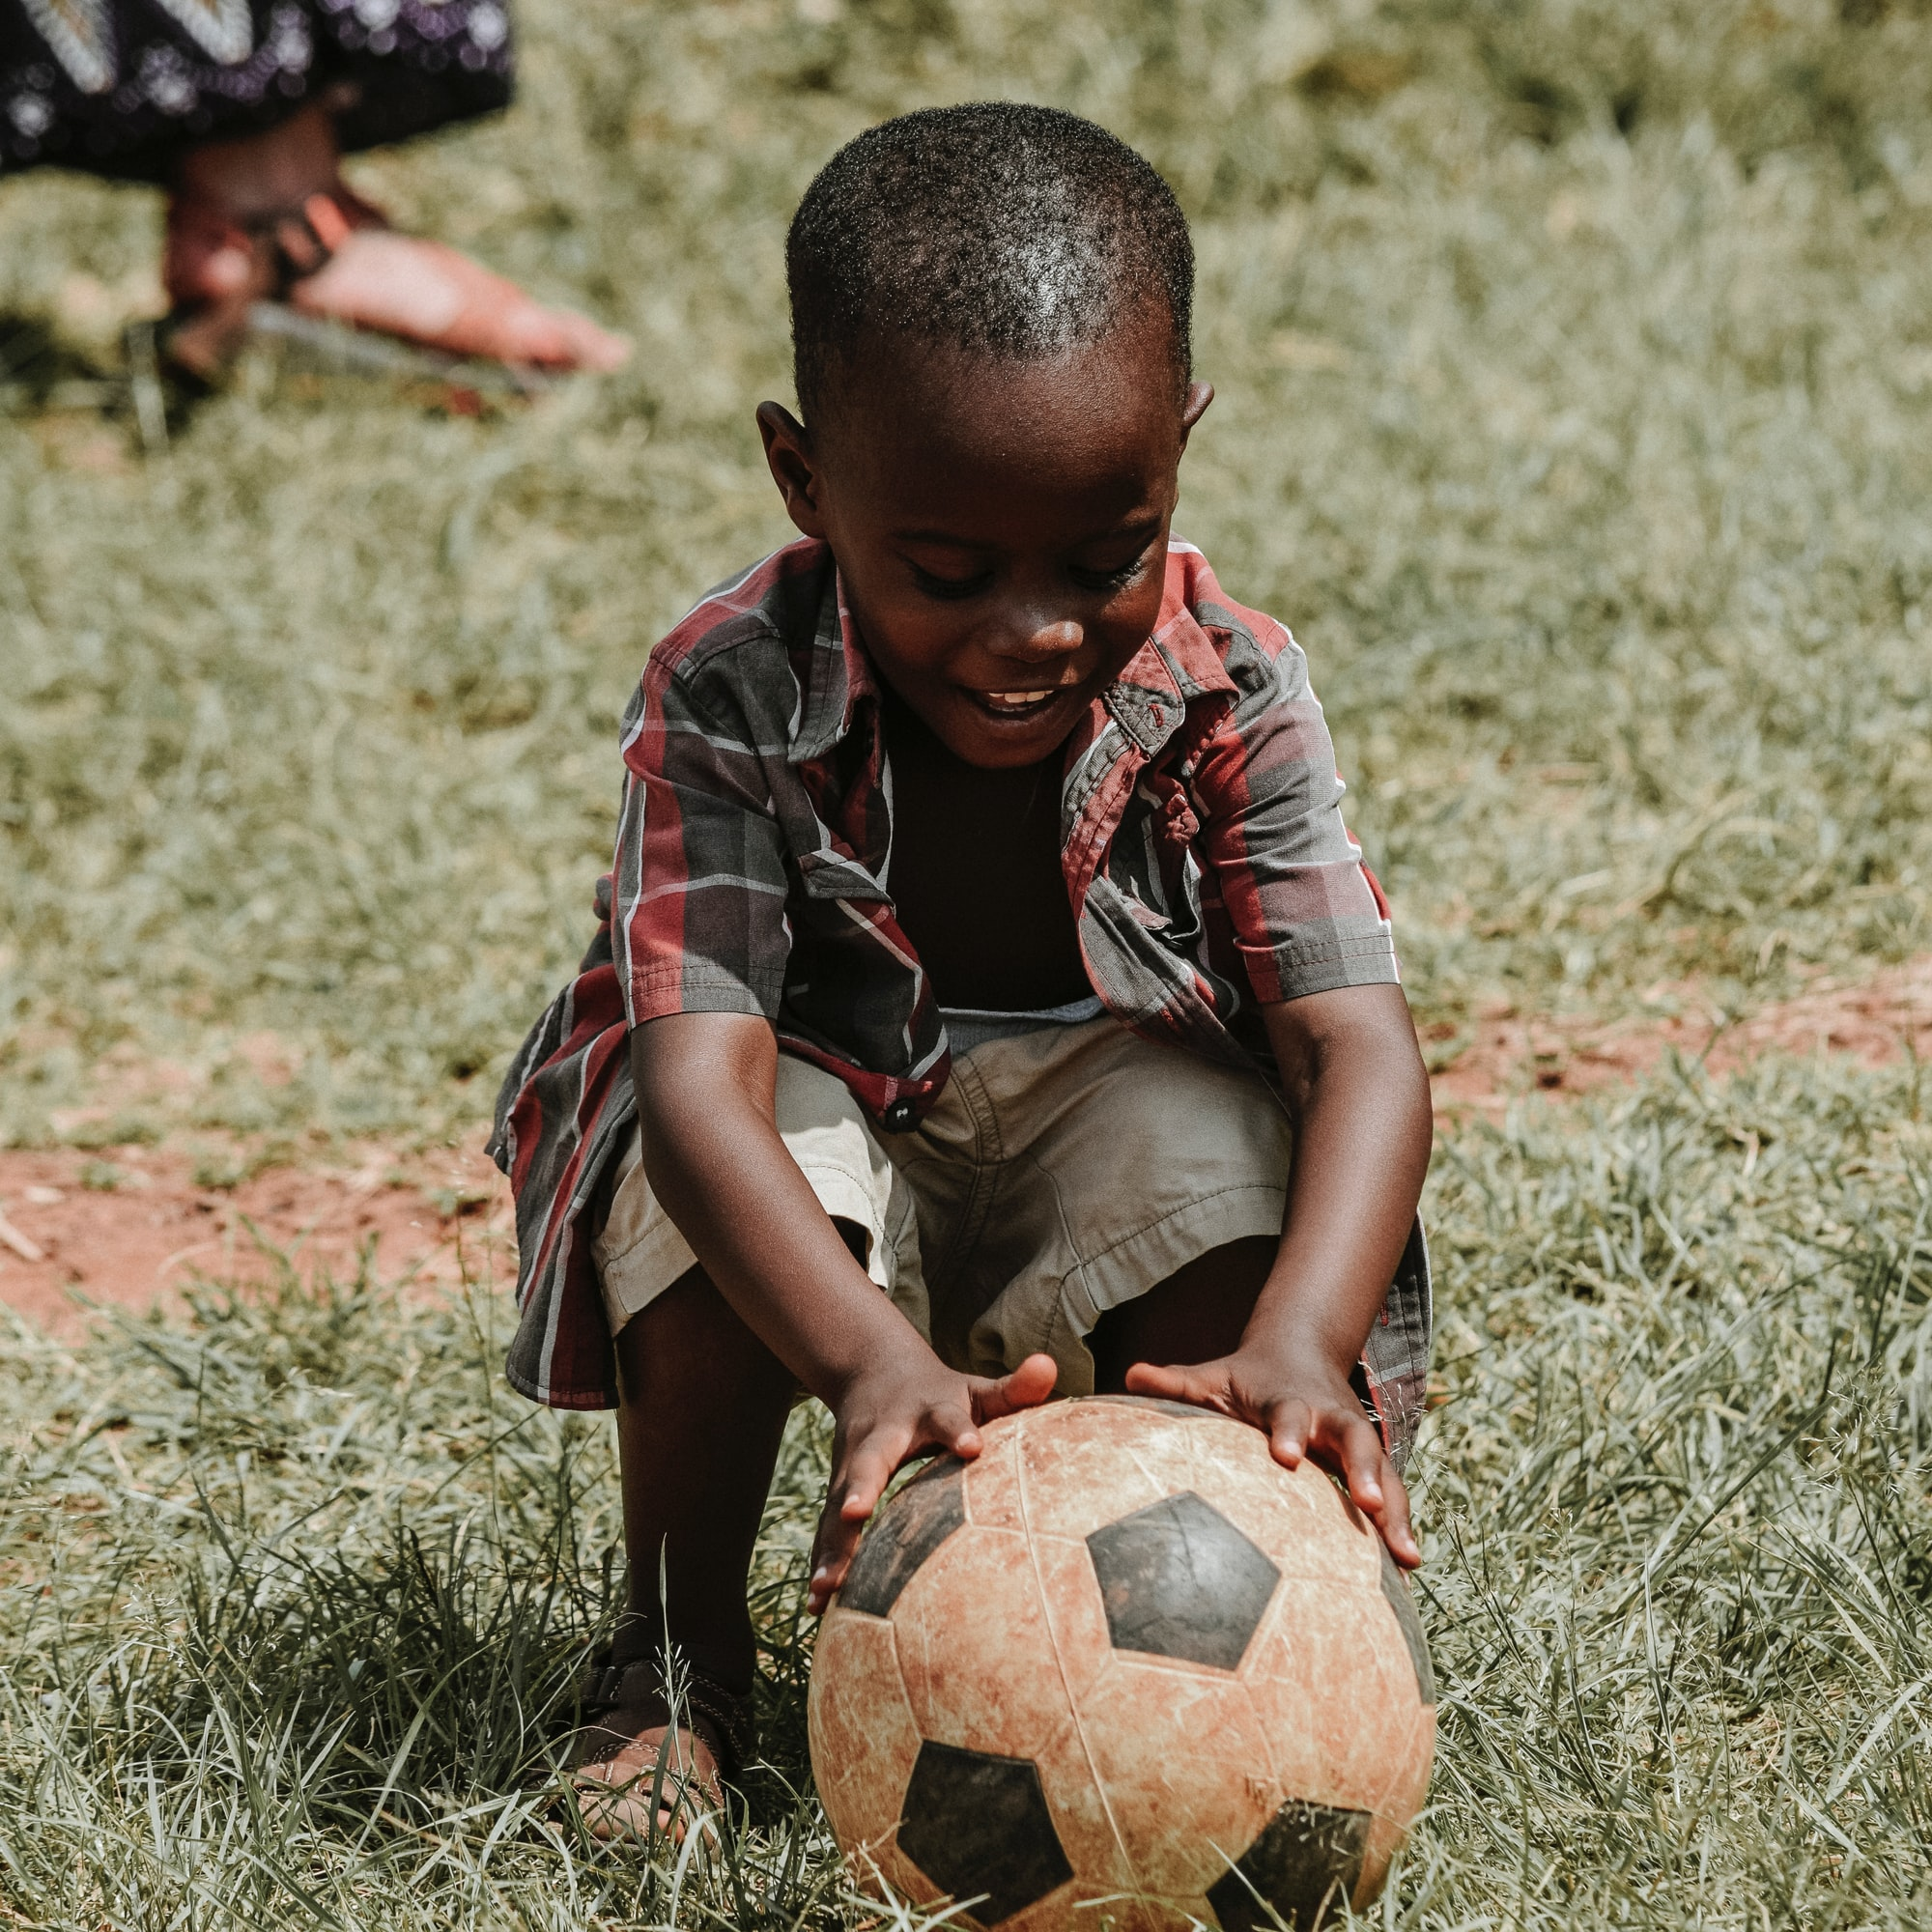 Child smiling with a soccer ball